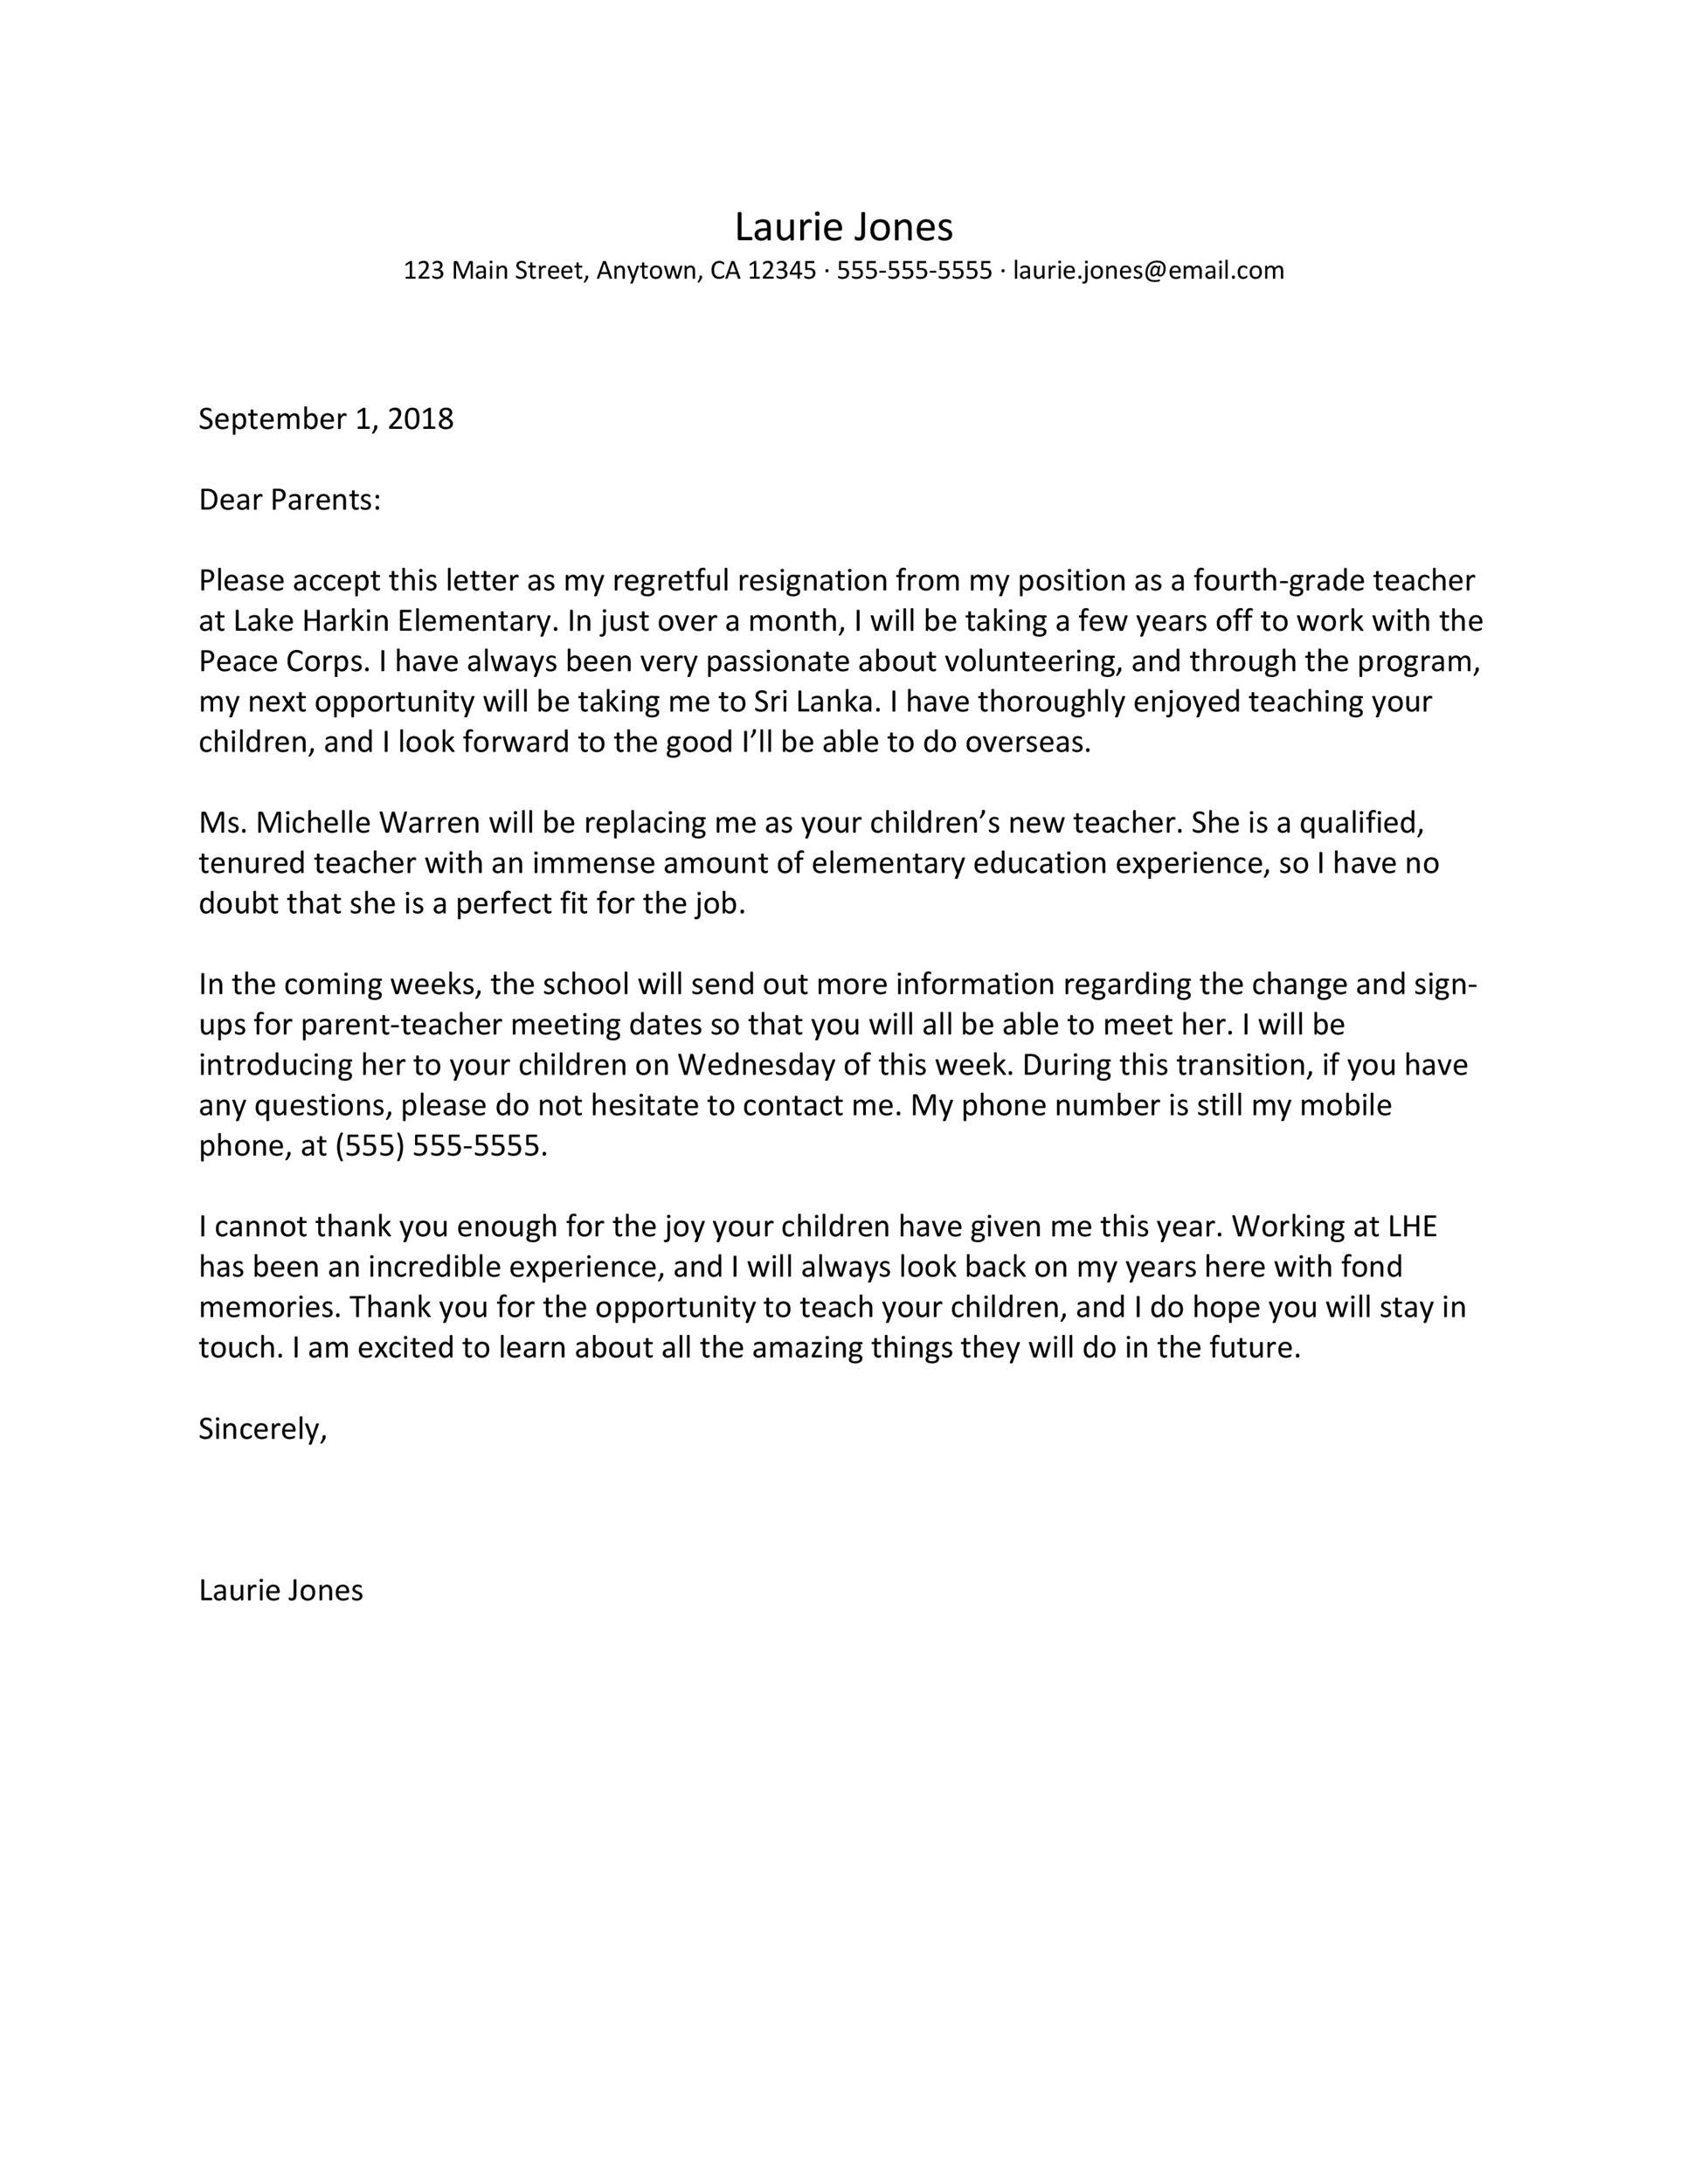 Letter Of Resignation Examples For Teachers from templatelab.com